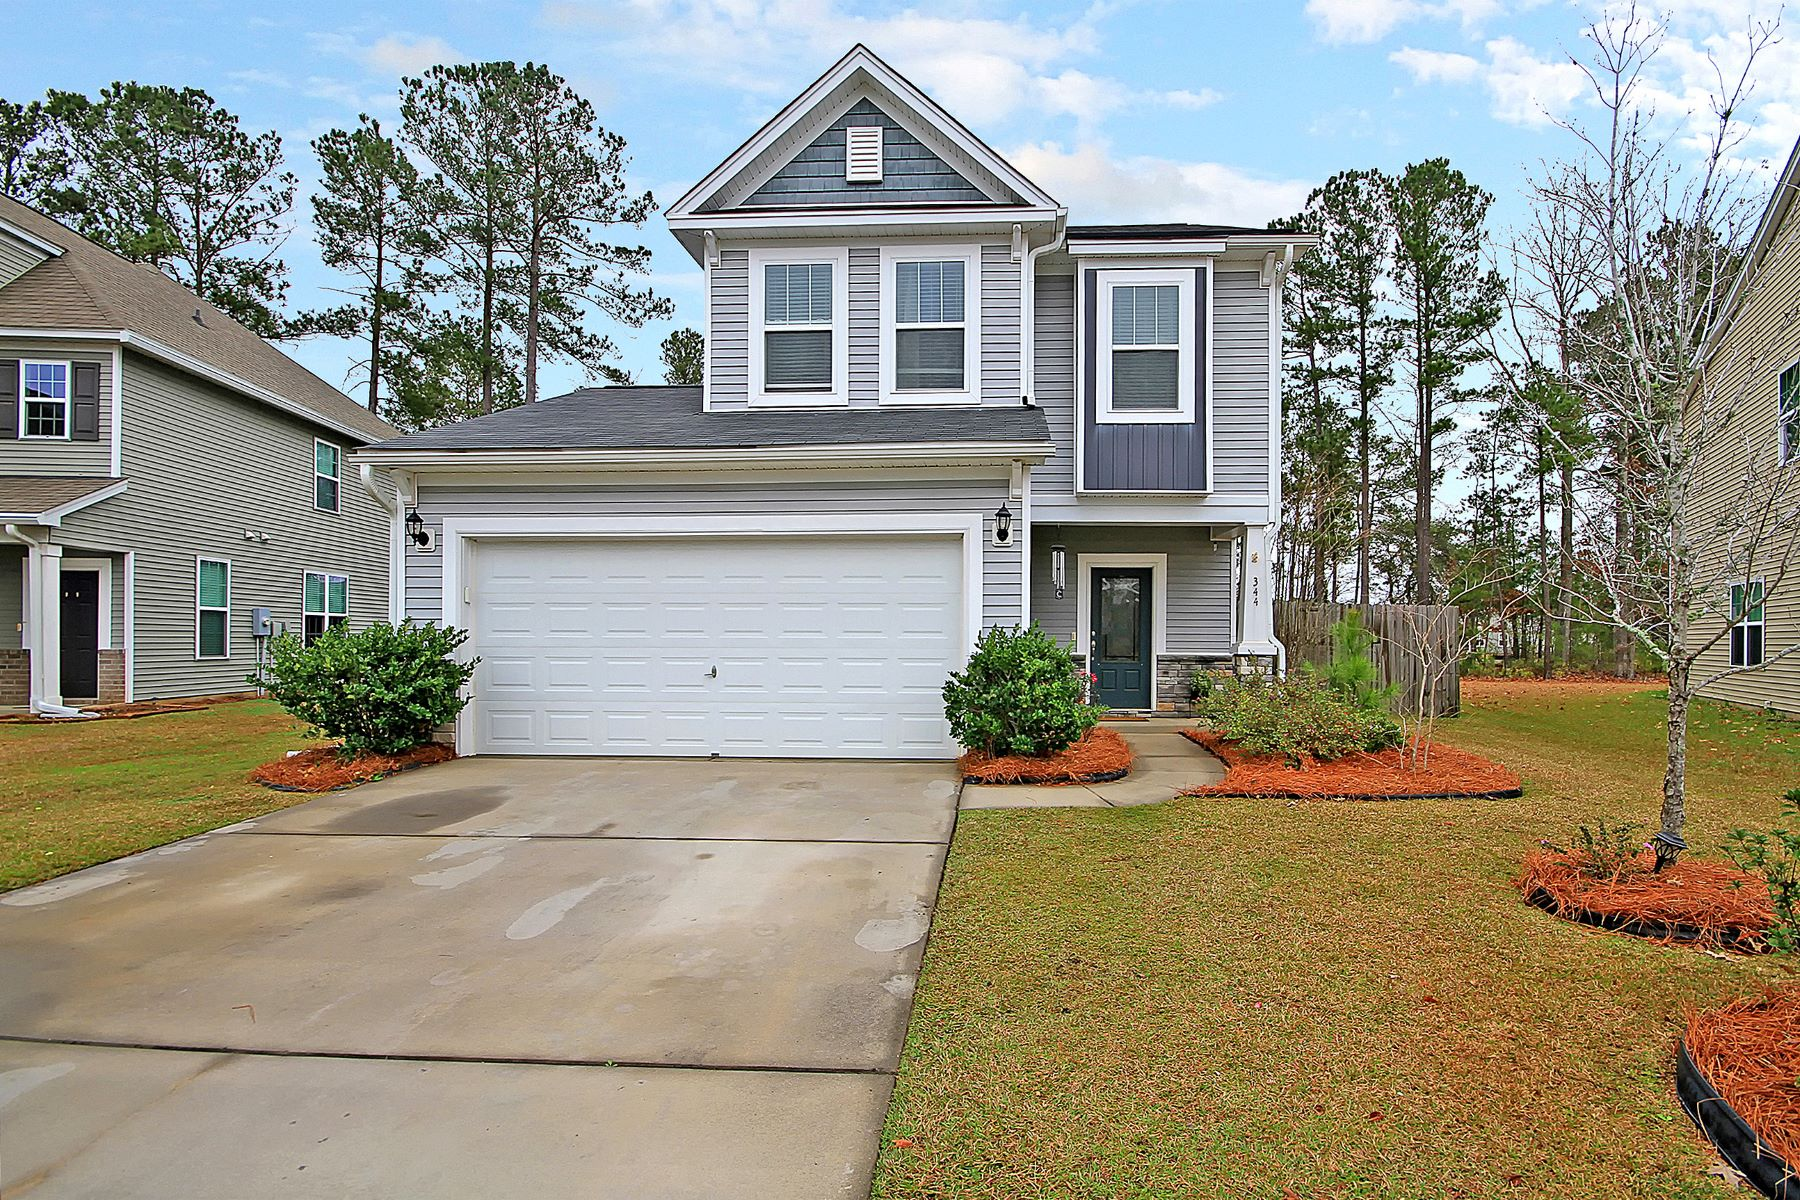 Single Family Homes for Active at 344 Drayton Place Drive Moncks Corner, South Carolina 29461 United States